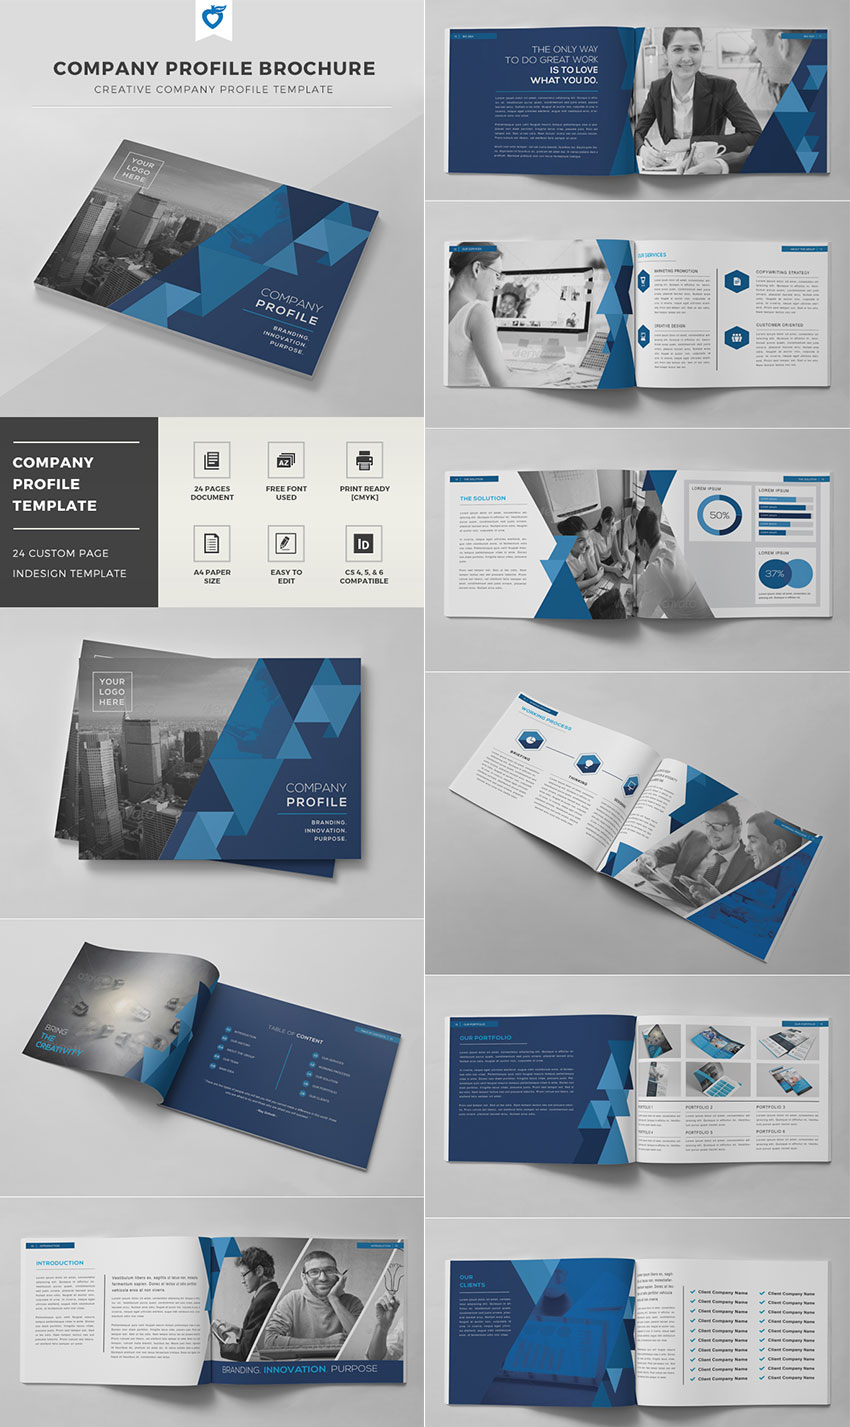 Best InDesign Brochure Templates For Creative Business Marketing - Marketing brochures templates